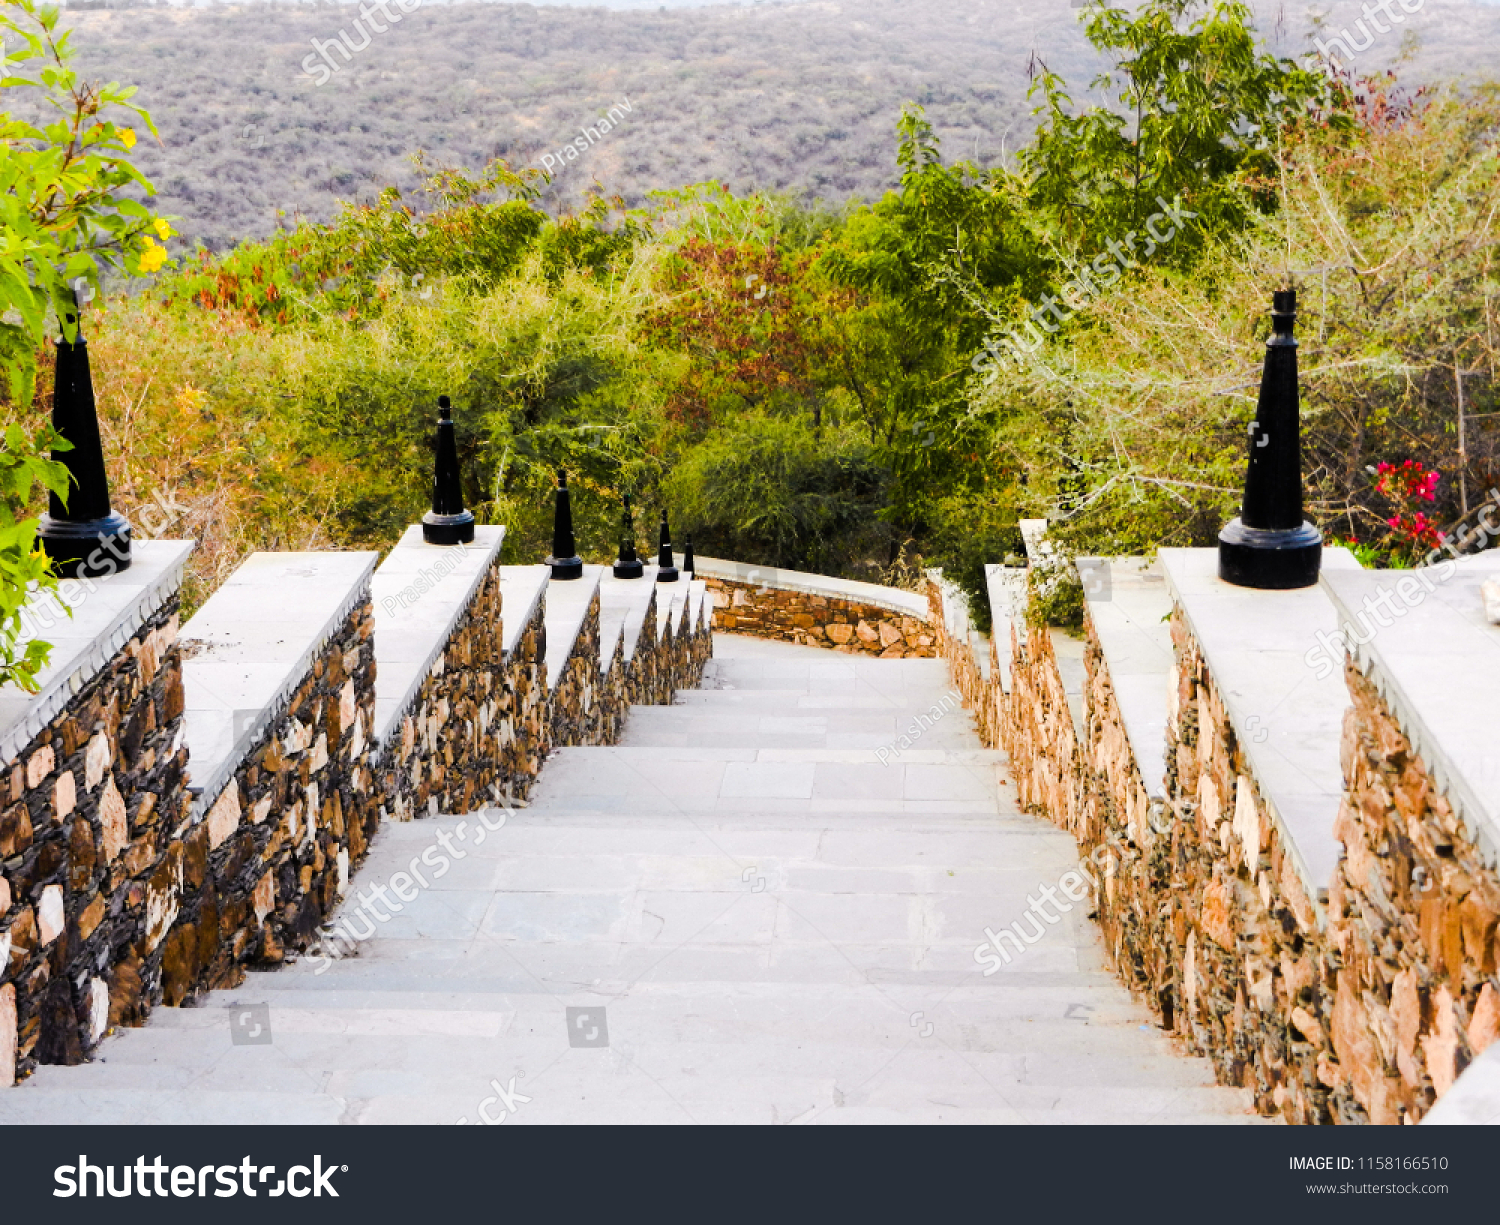 greenery view with rounded downstairs pathway made up of biv brown stones